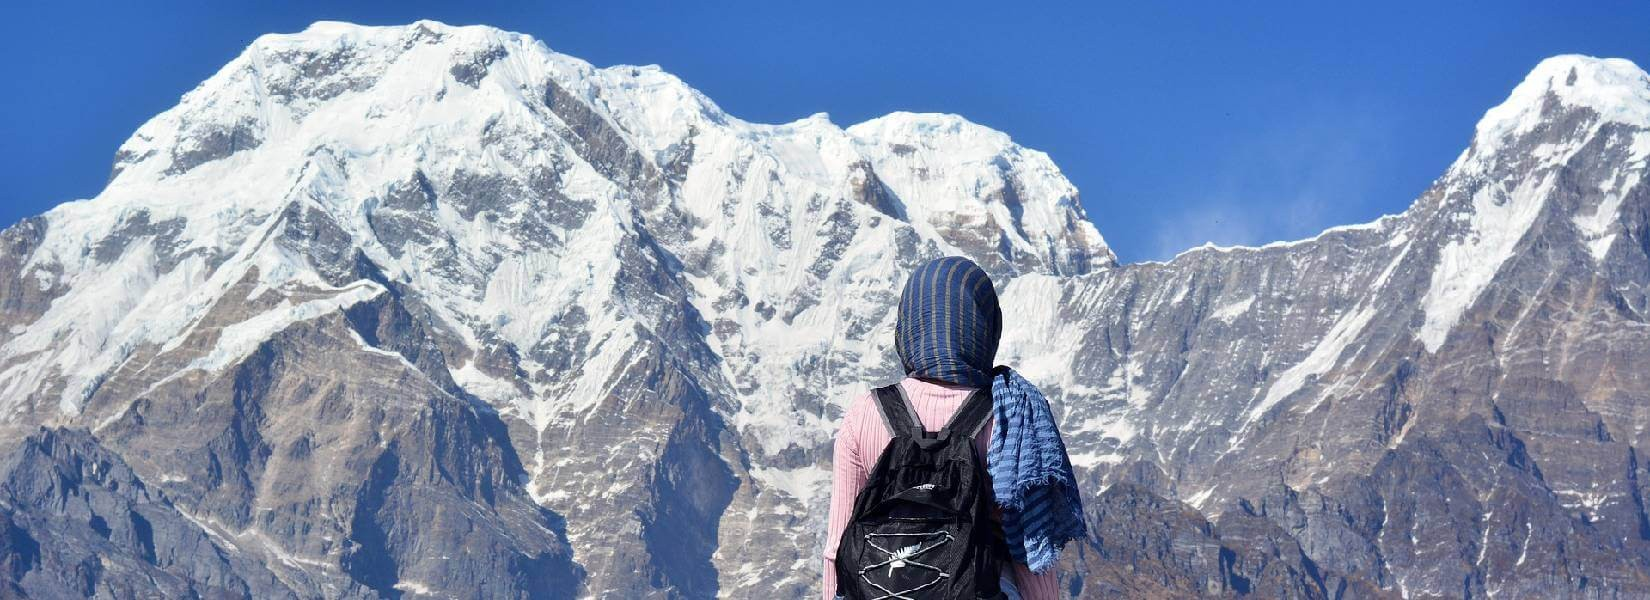 trekking in nepal for beginners